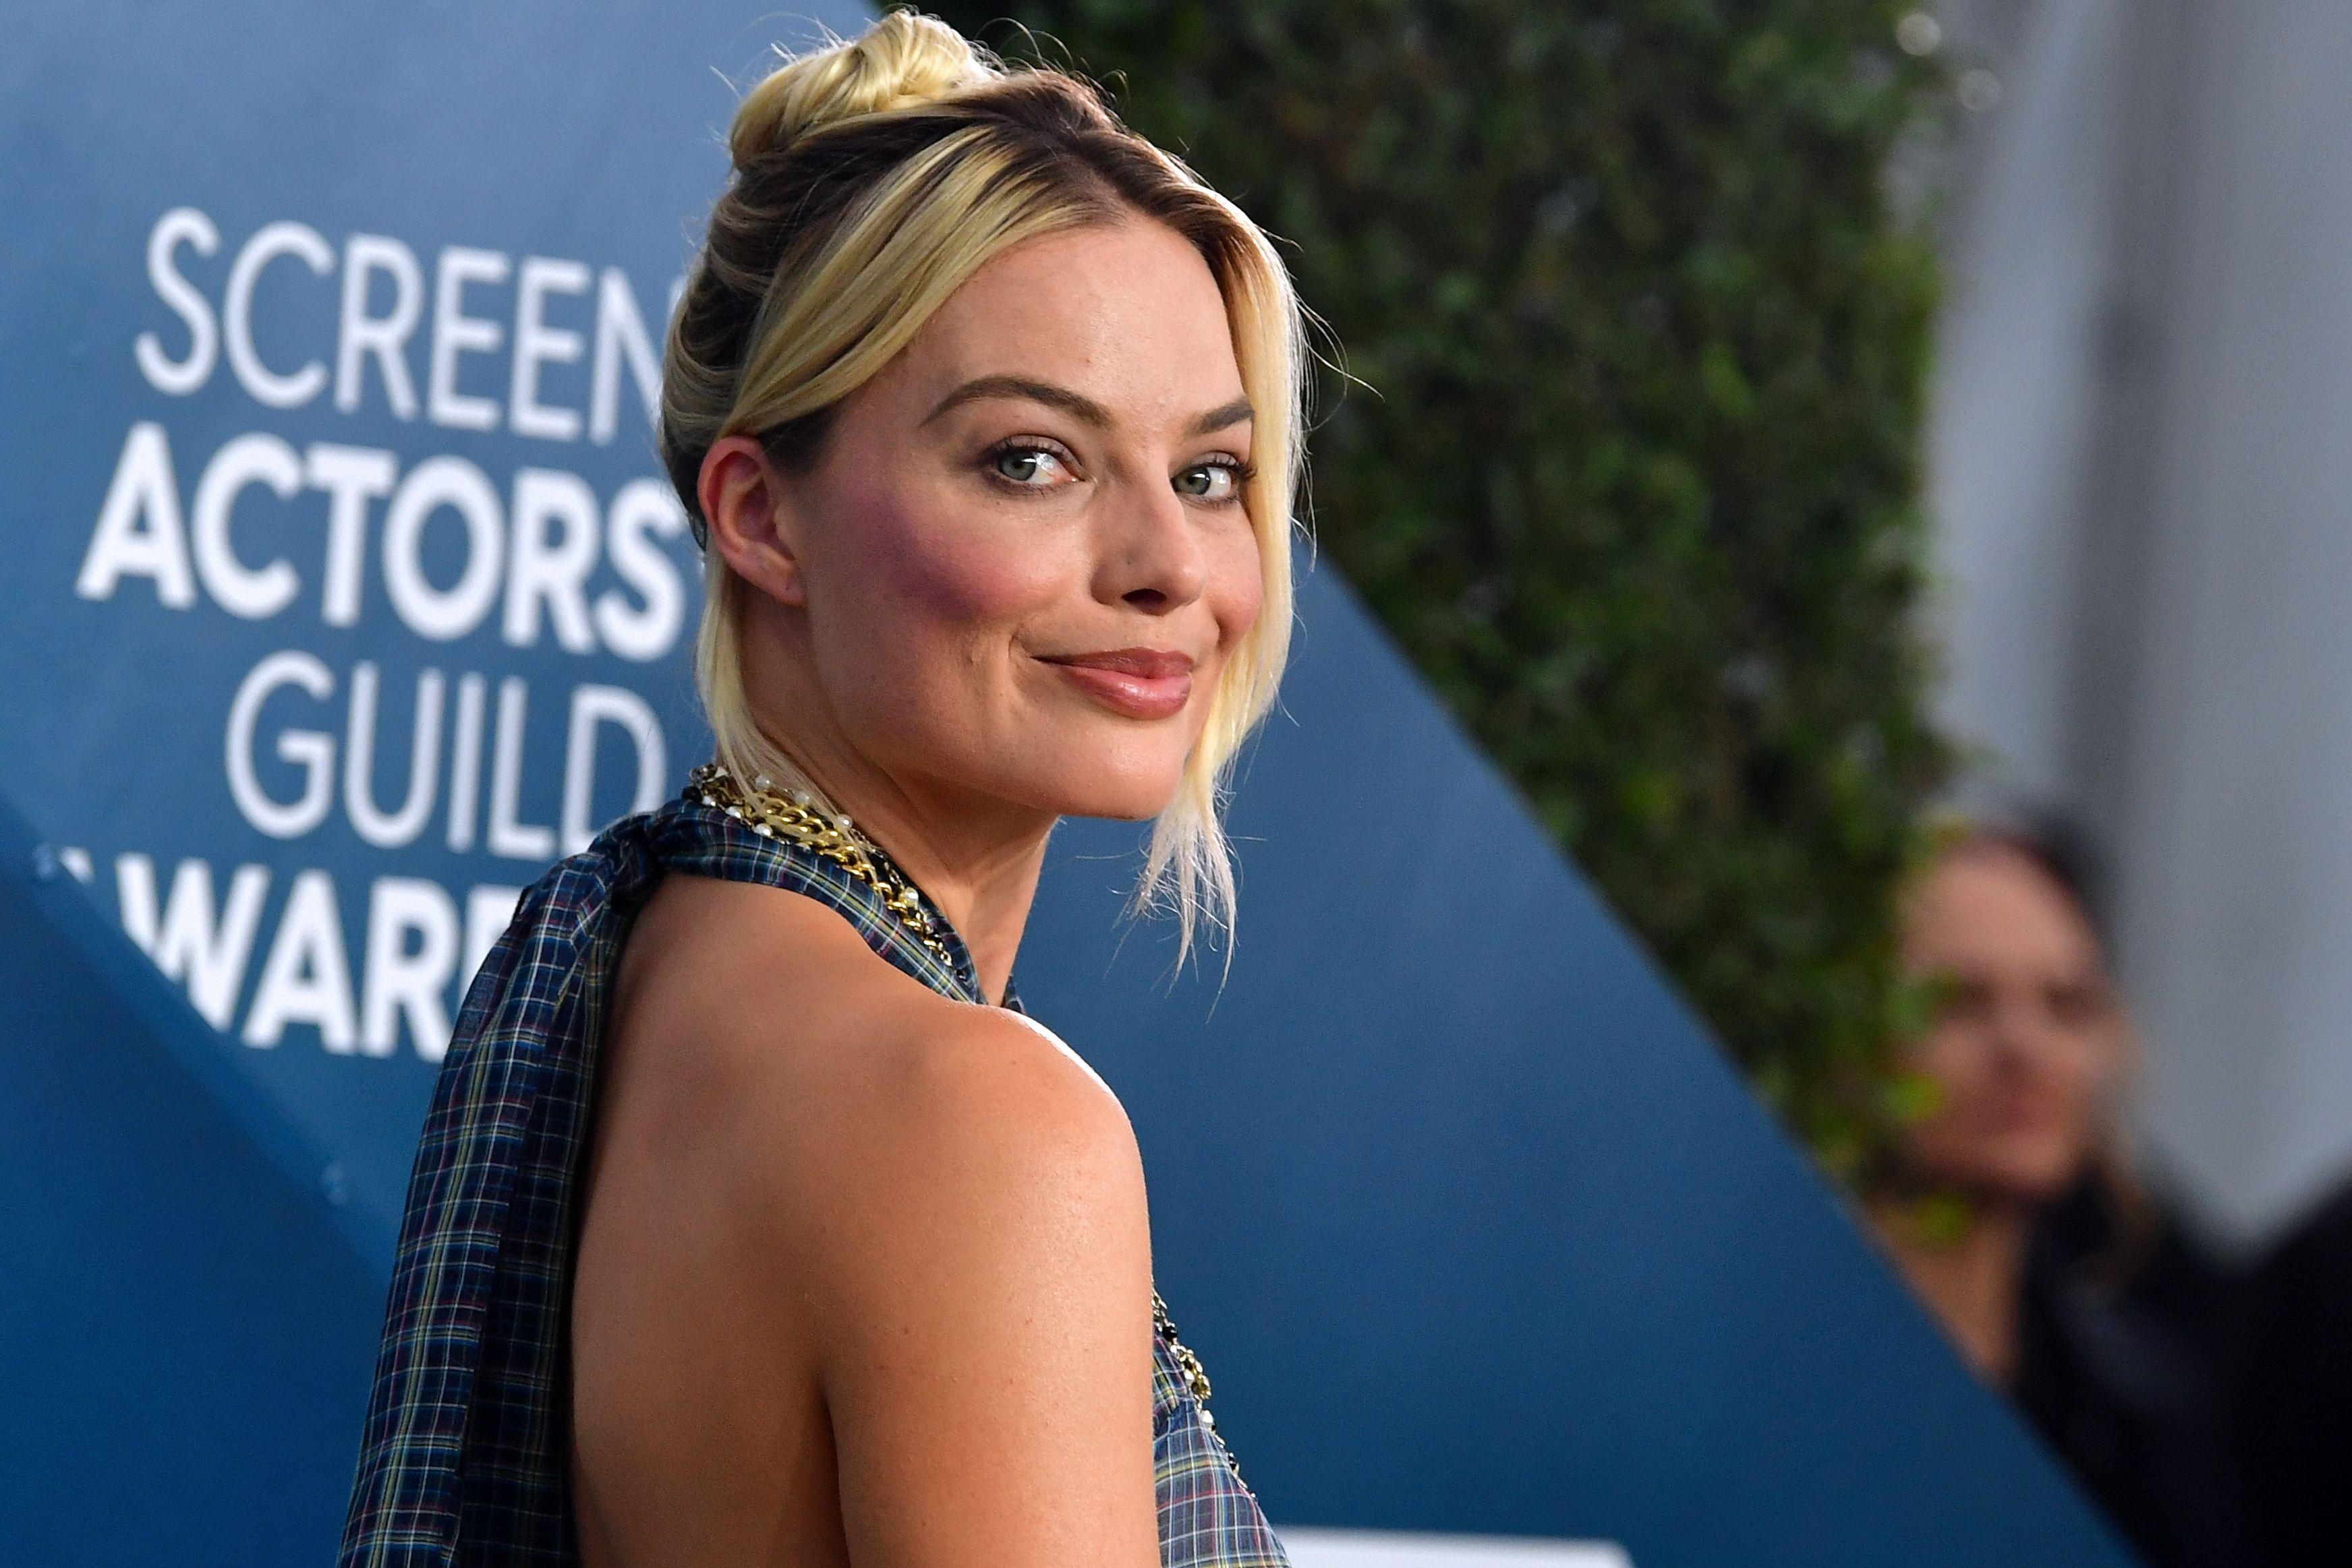 SAG Awards 2020: See what the stars wore